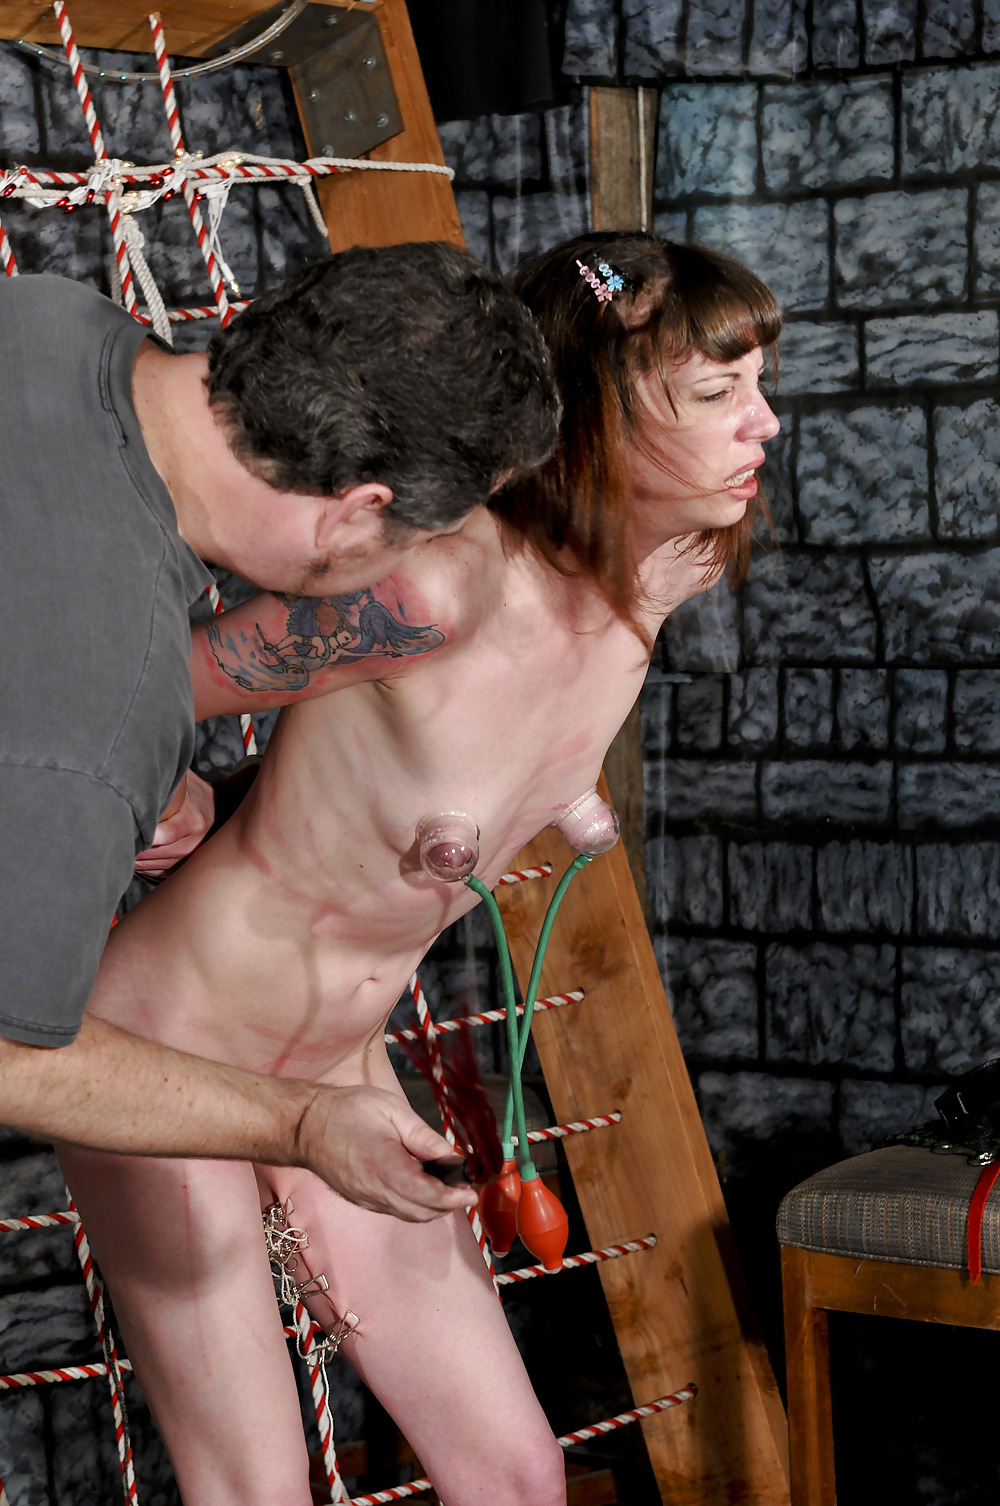 Nude Asian Women Whipping Slave